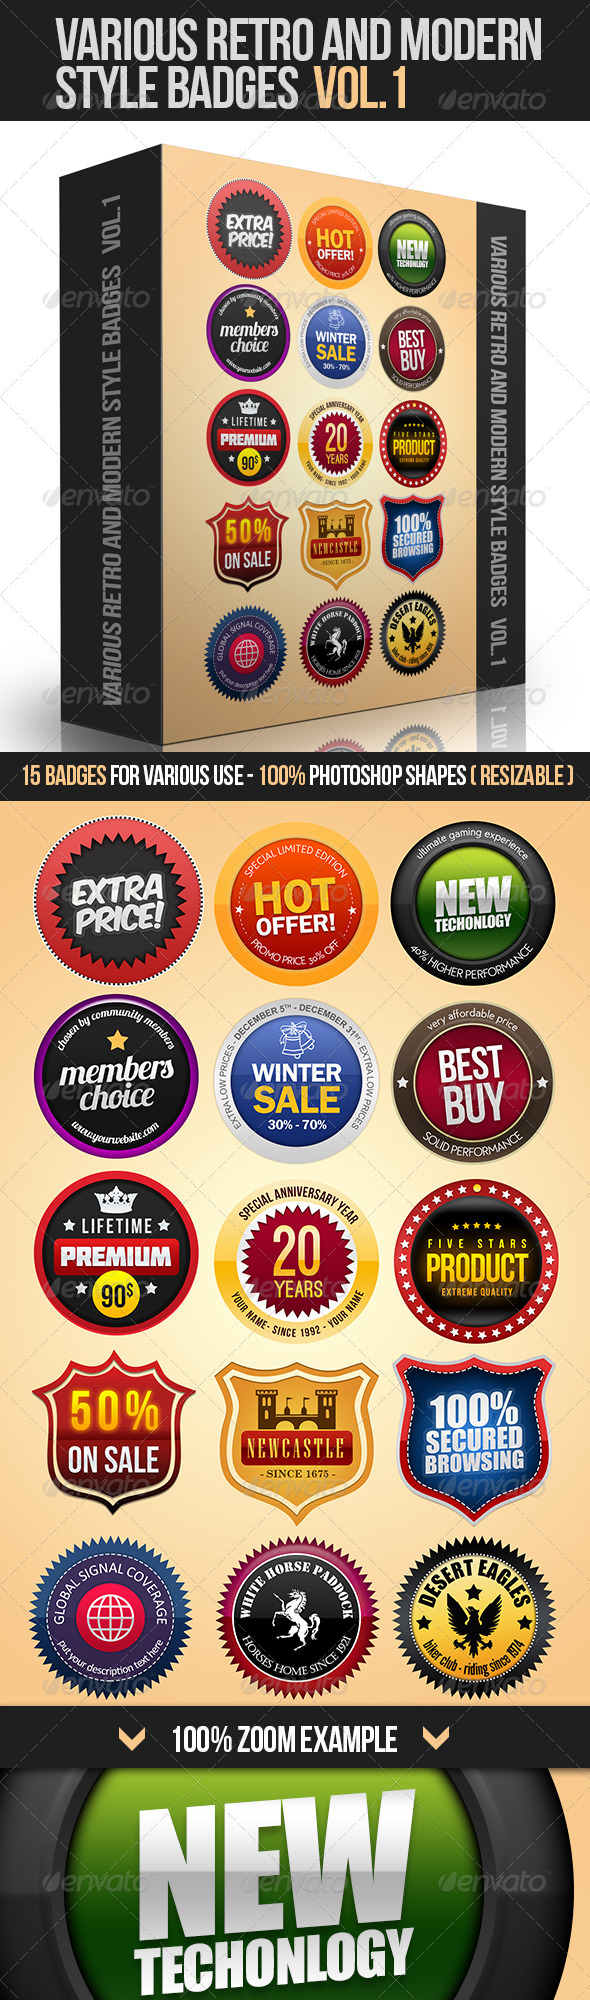 GraphicRiver Various Retro And Modern Style Badges Vol.1 3537722